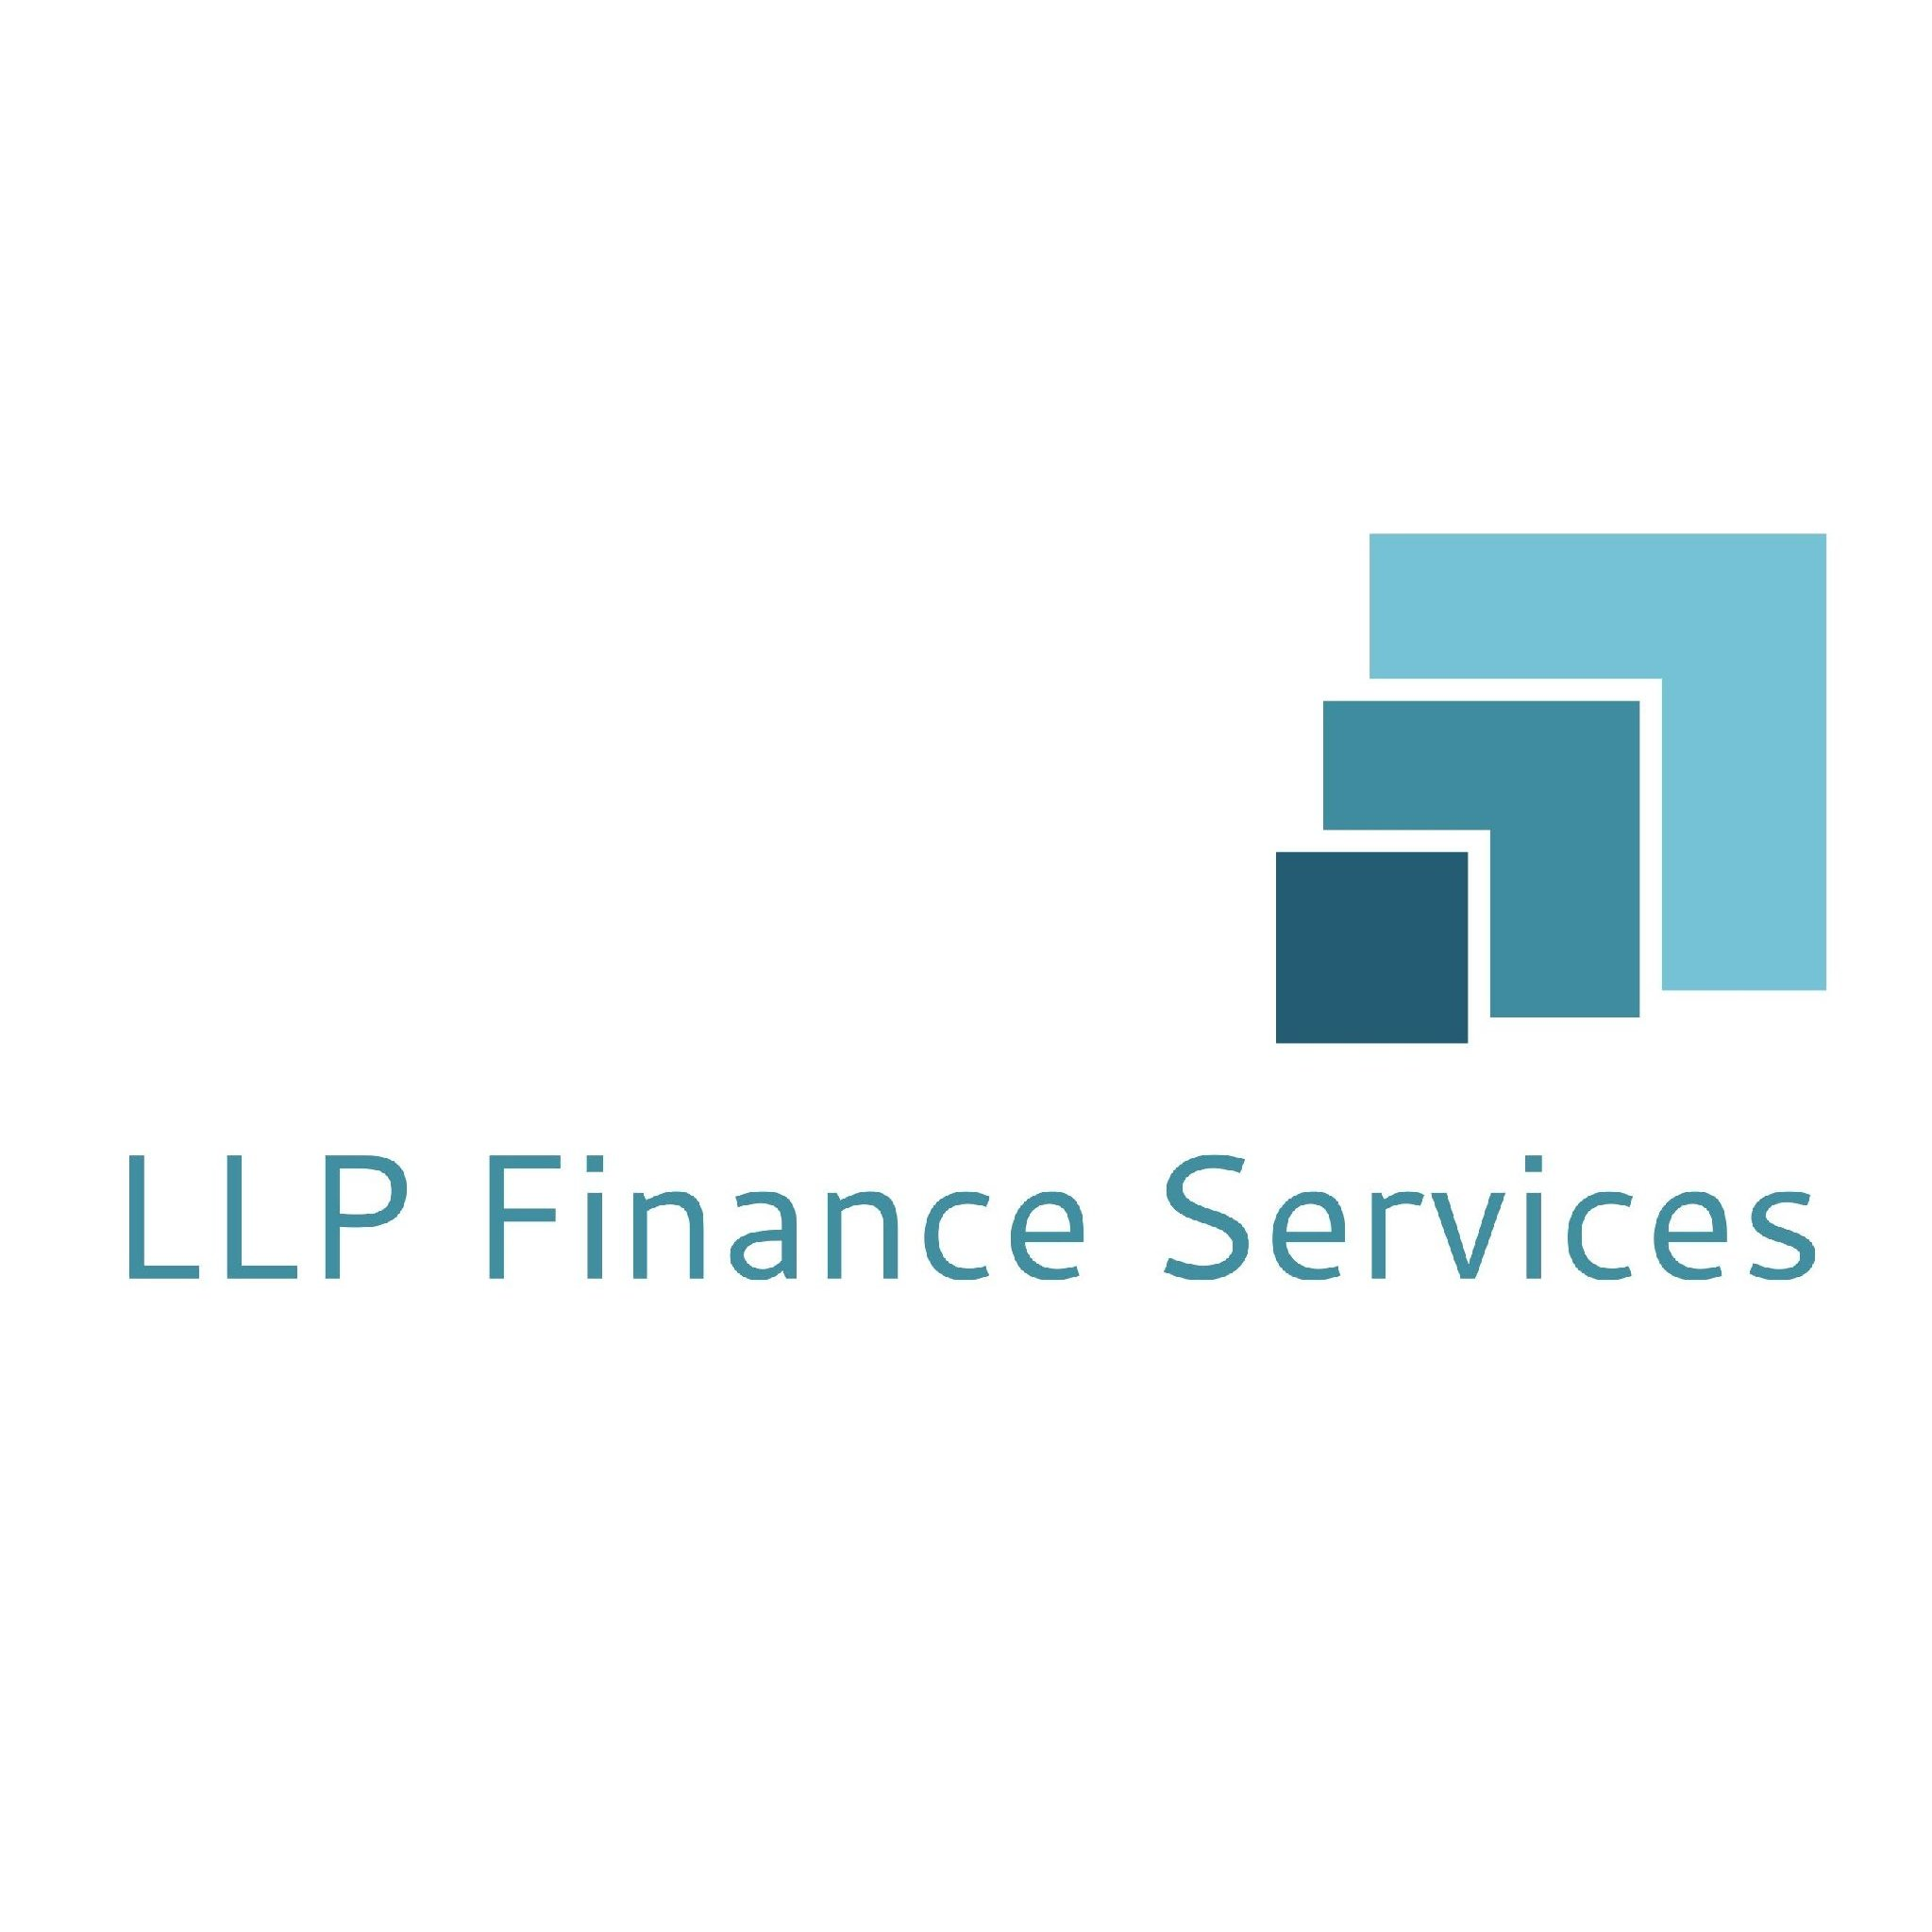 LLP Finance Services - Redditch, Worcestershire B96 6BS - 07545 477061 | ShowMeLocal.com